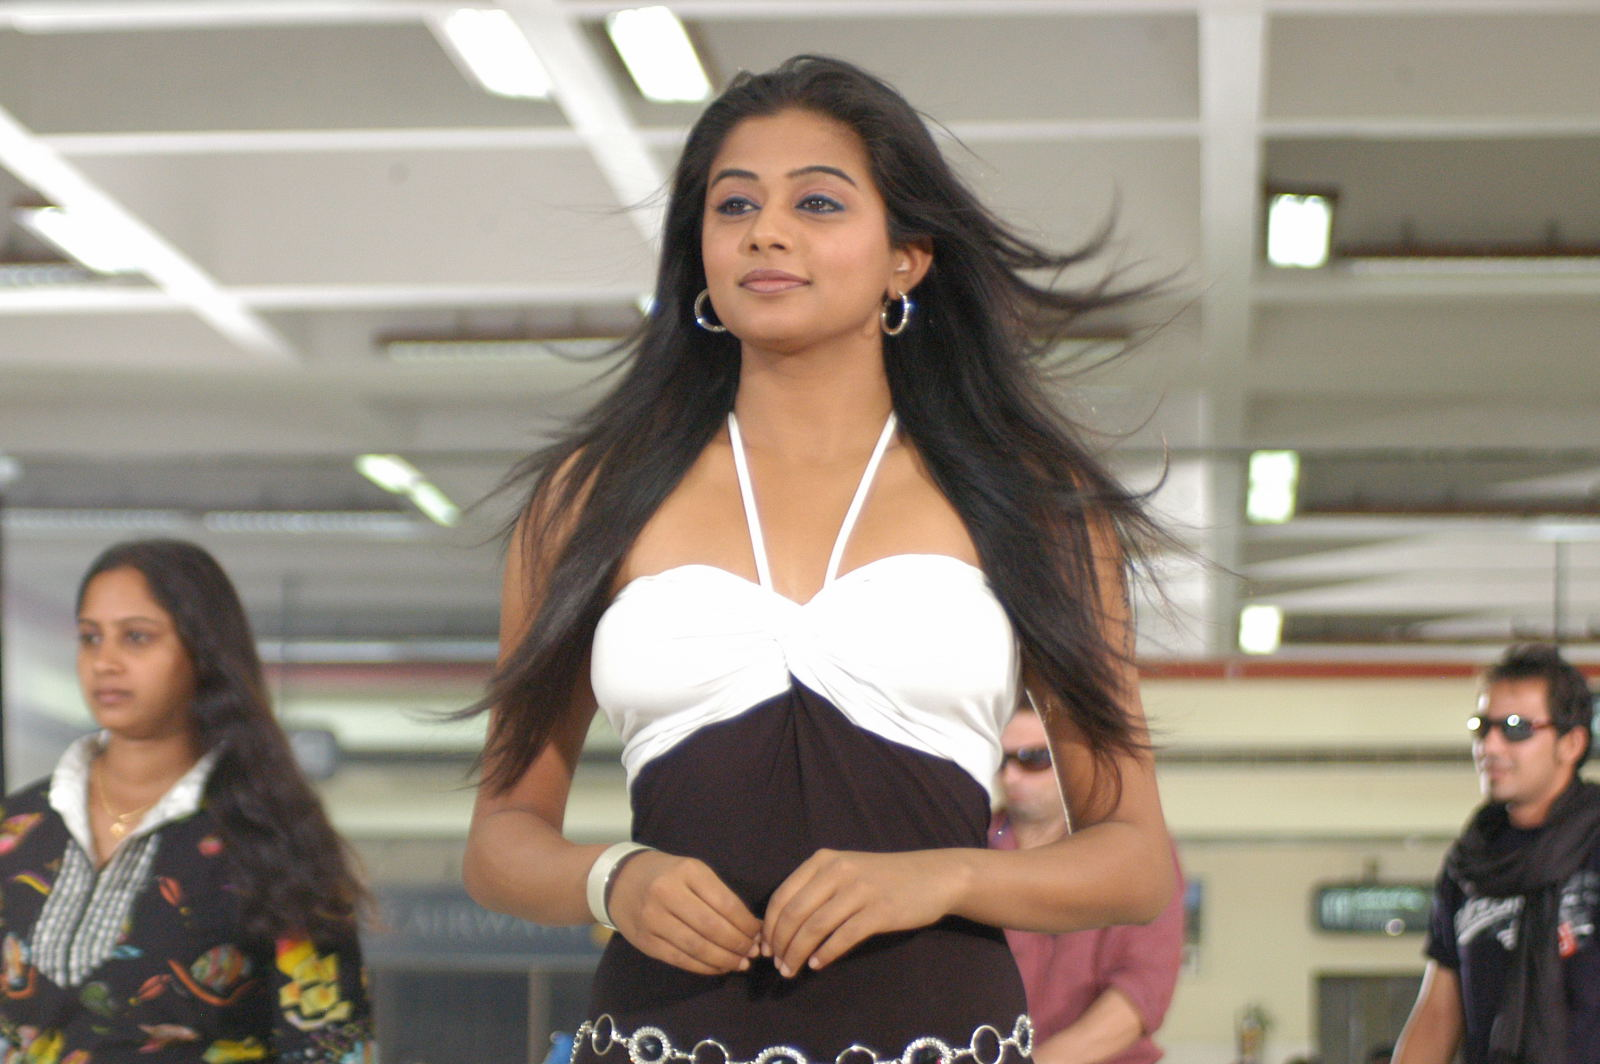 Priyamani 1 - Priyamani Hot Unseen Stills